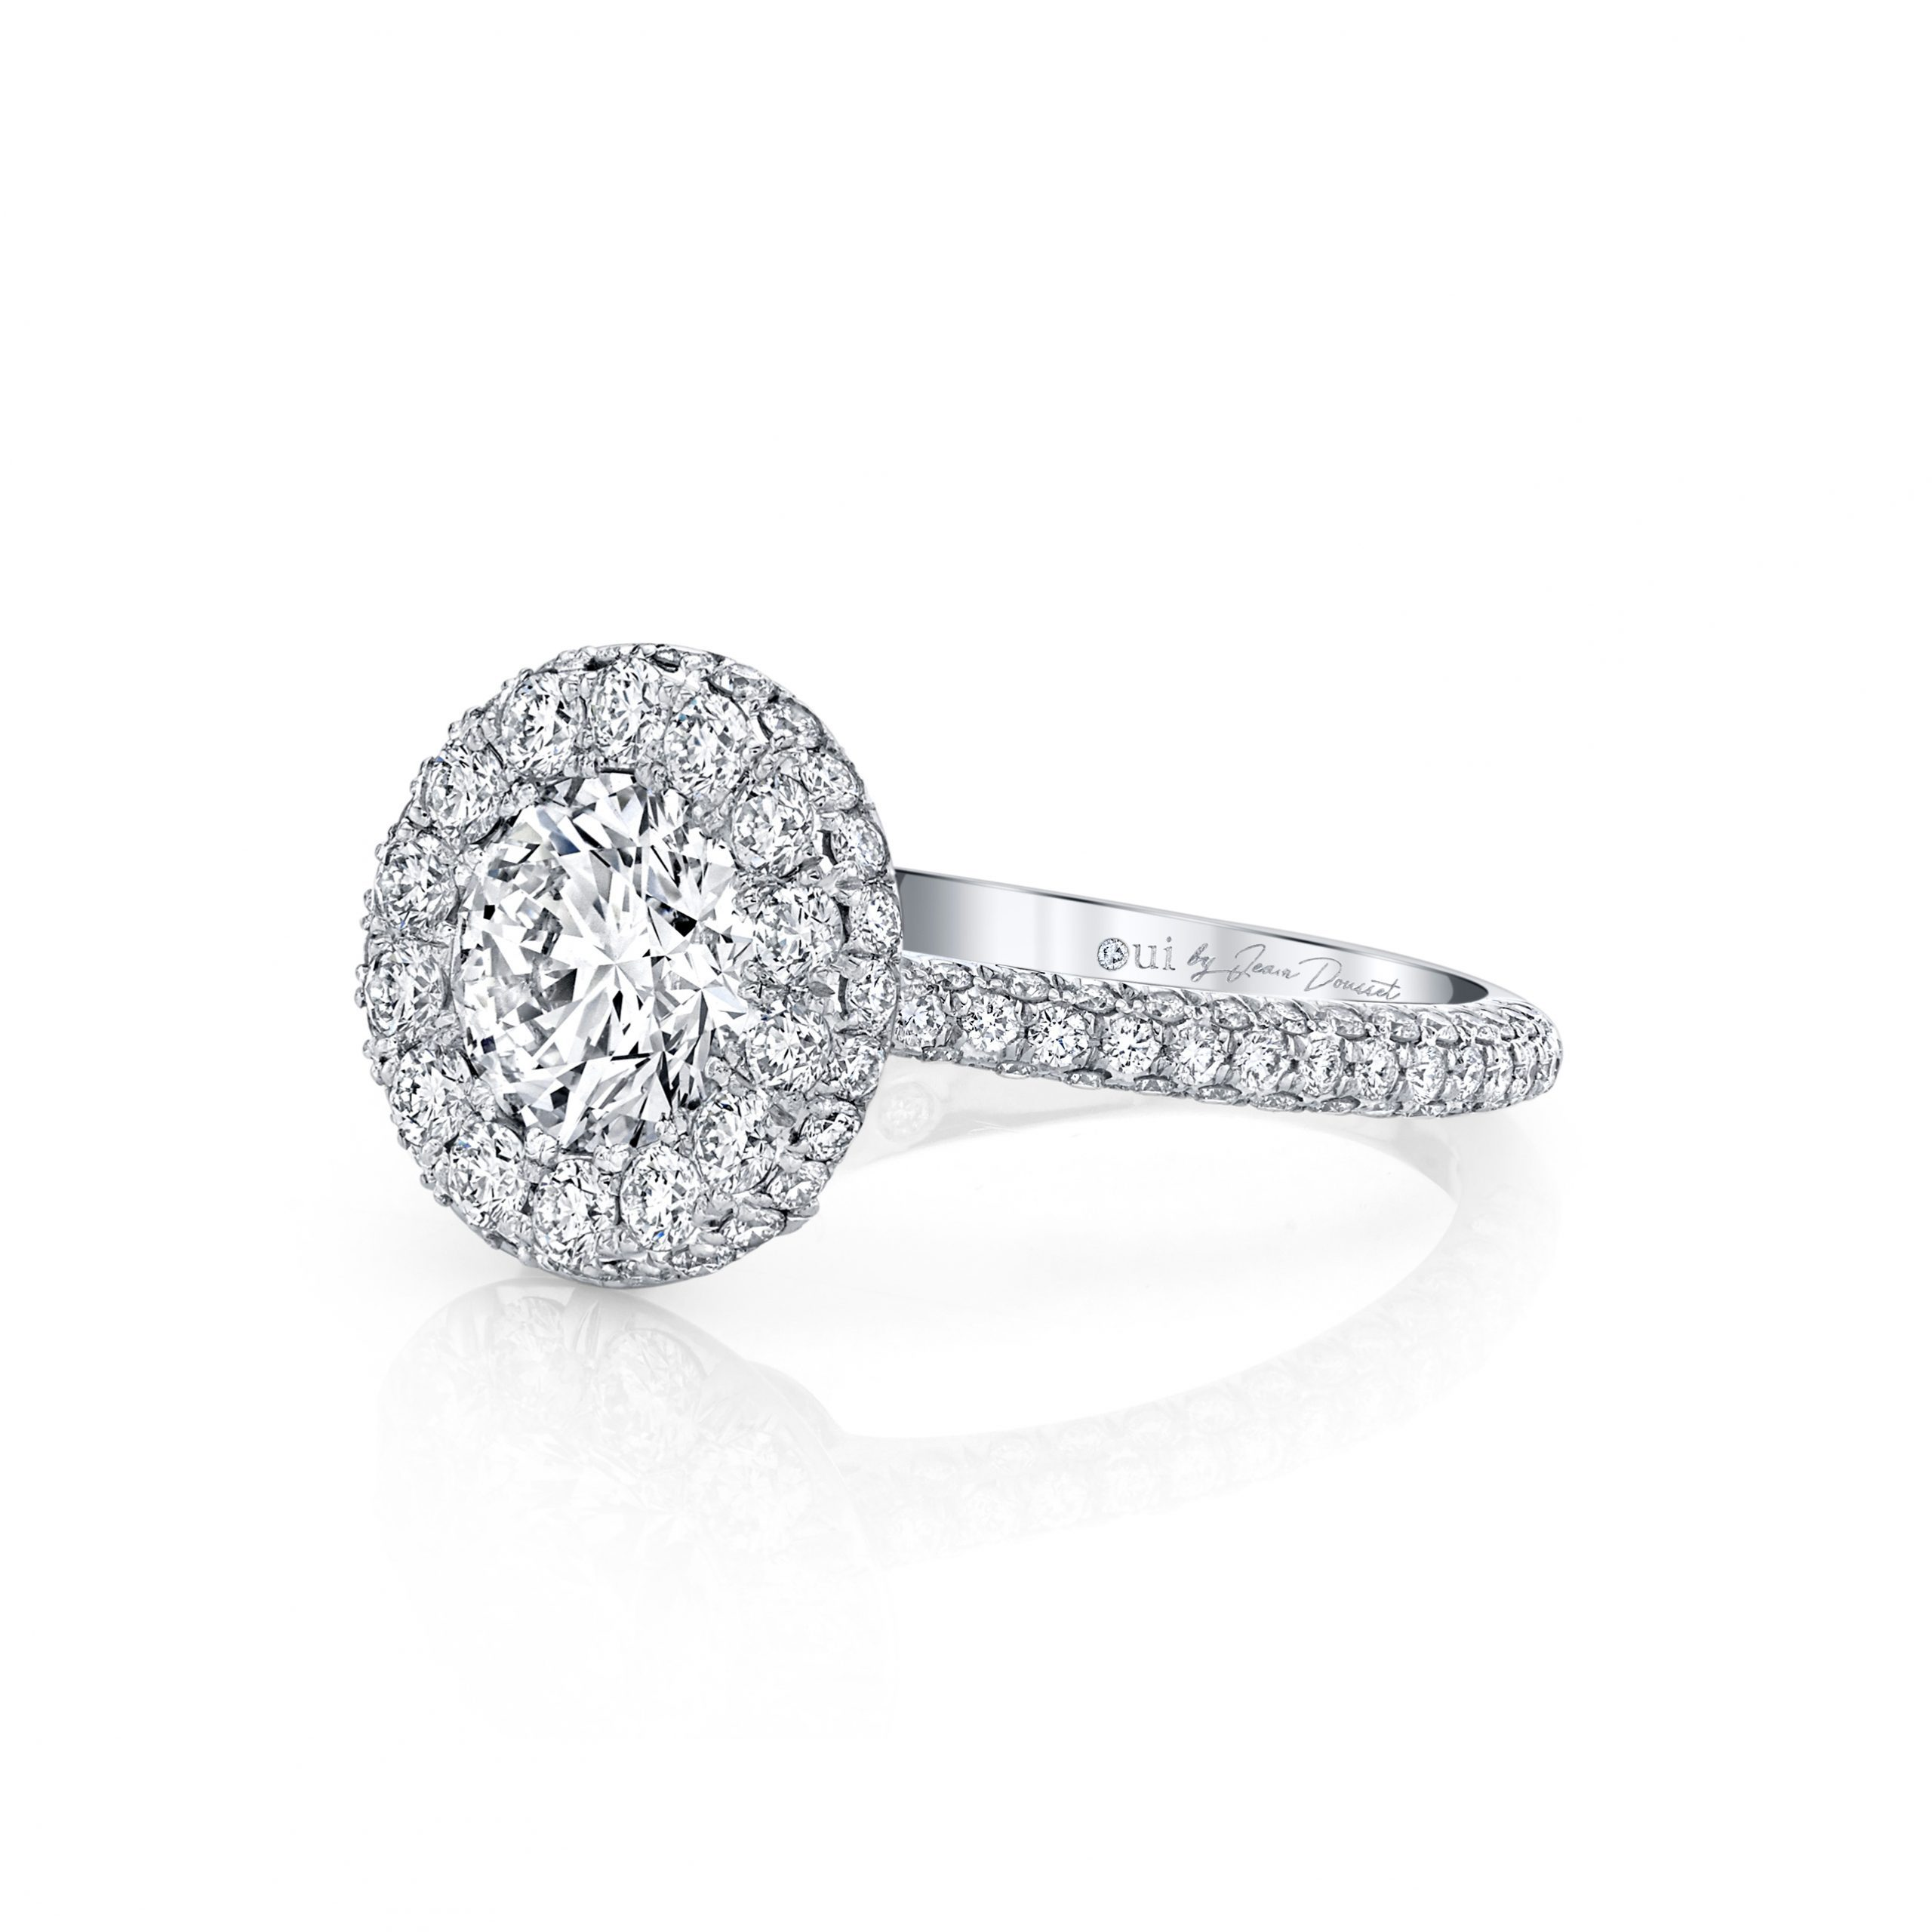 Jacqueline Round Brilliant Seamless Halo® Engagement Ring with diamond pavé in 18k White Gold Side View by Oui by Jean Dousset